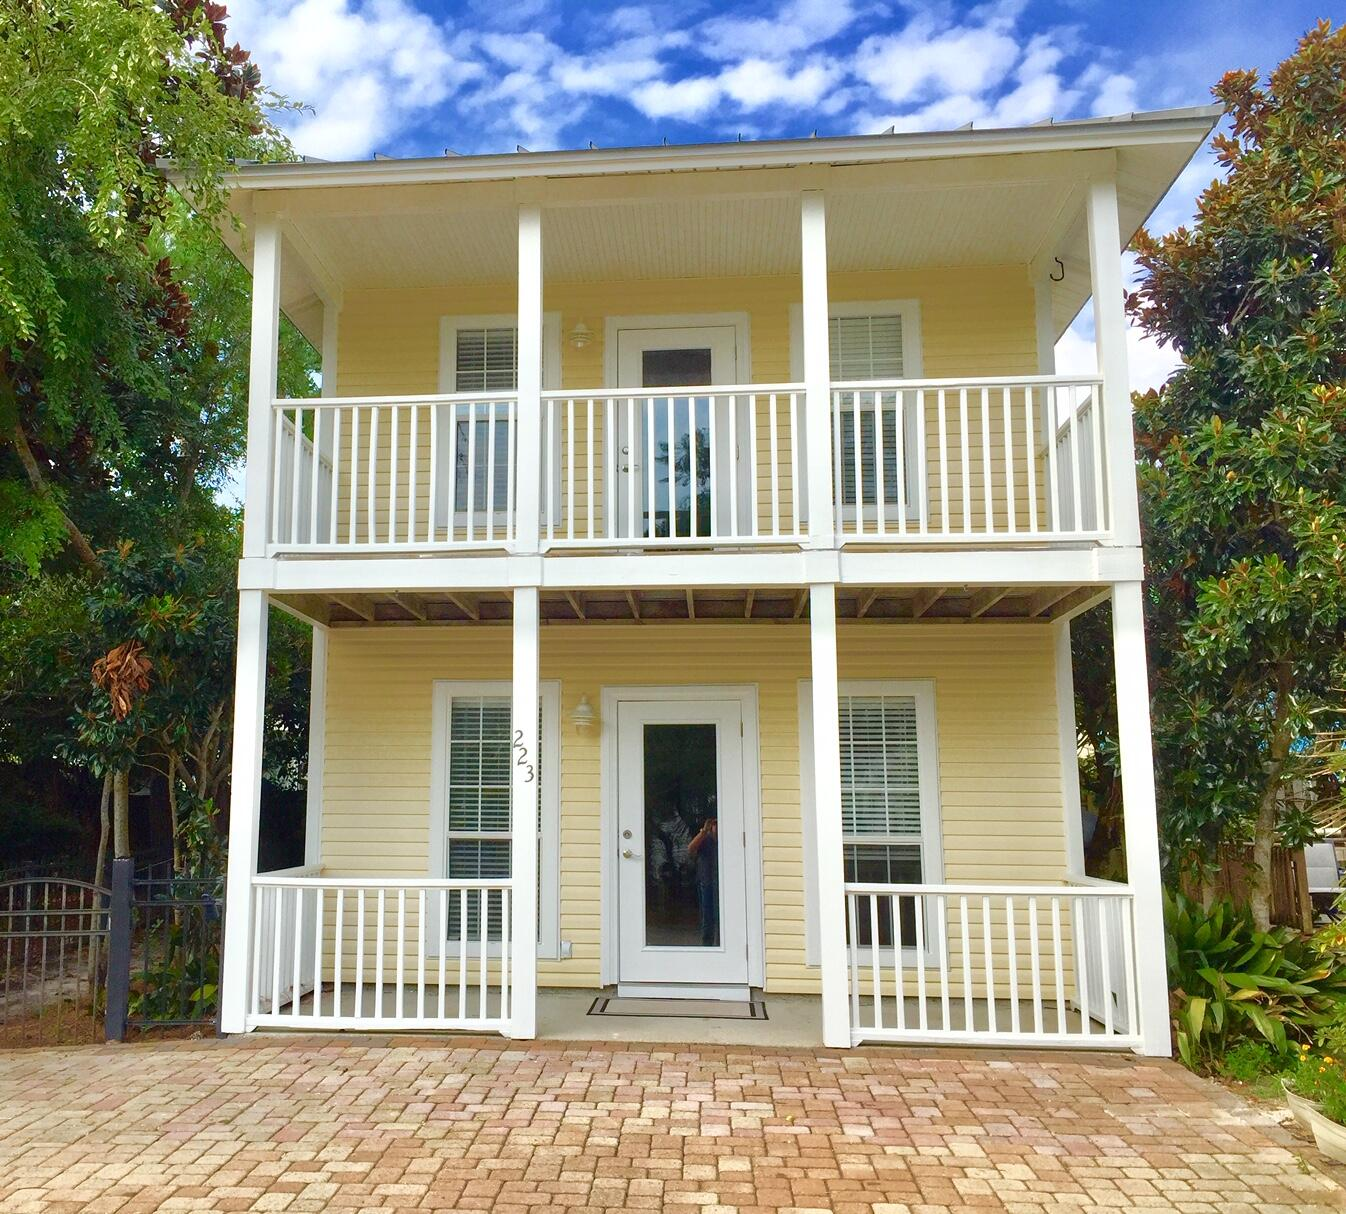 This Cottage on the South Side of 30A is ready for your Beach Vacation! A Full Kitchen, Living Room and Dining Area are downstairs with a Utility Room and 3/4 Bath. Upstairs are Two Bedrooms and a full bath. Both bedrooms have walk in closets, and the front bedroom has a covered balcony for relaxing! Or use the Deck in the Backyard for Grilling. Great location on Thirty A and no HOA! Come see this newly renovated home before it's gone!